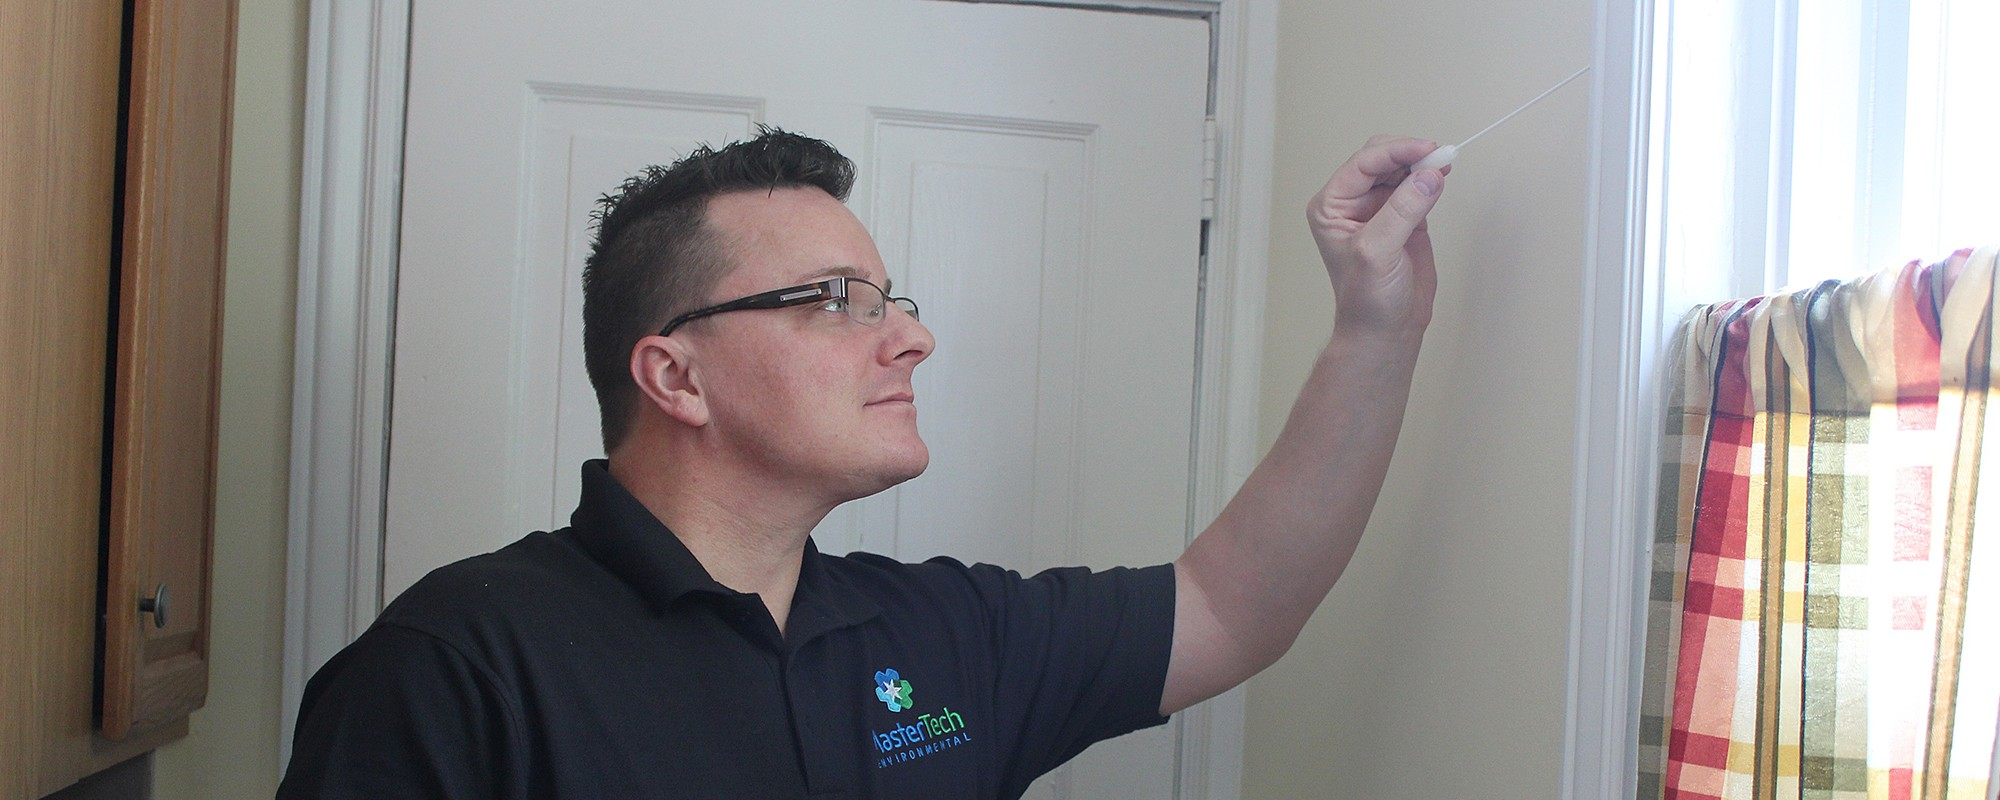 mold-testing-inspector-new-jersey